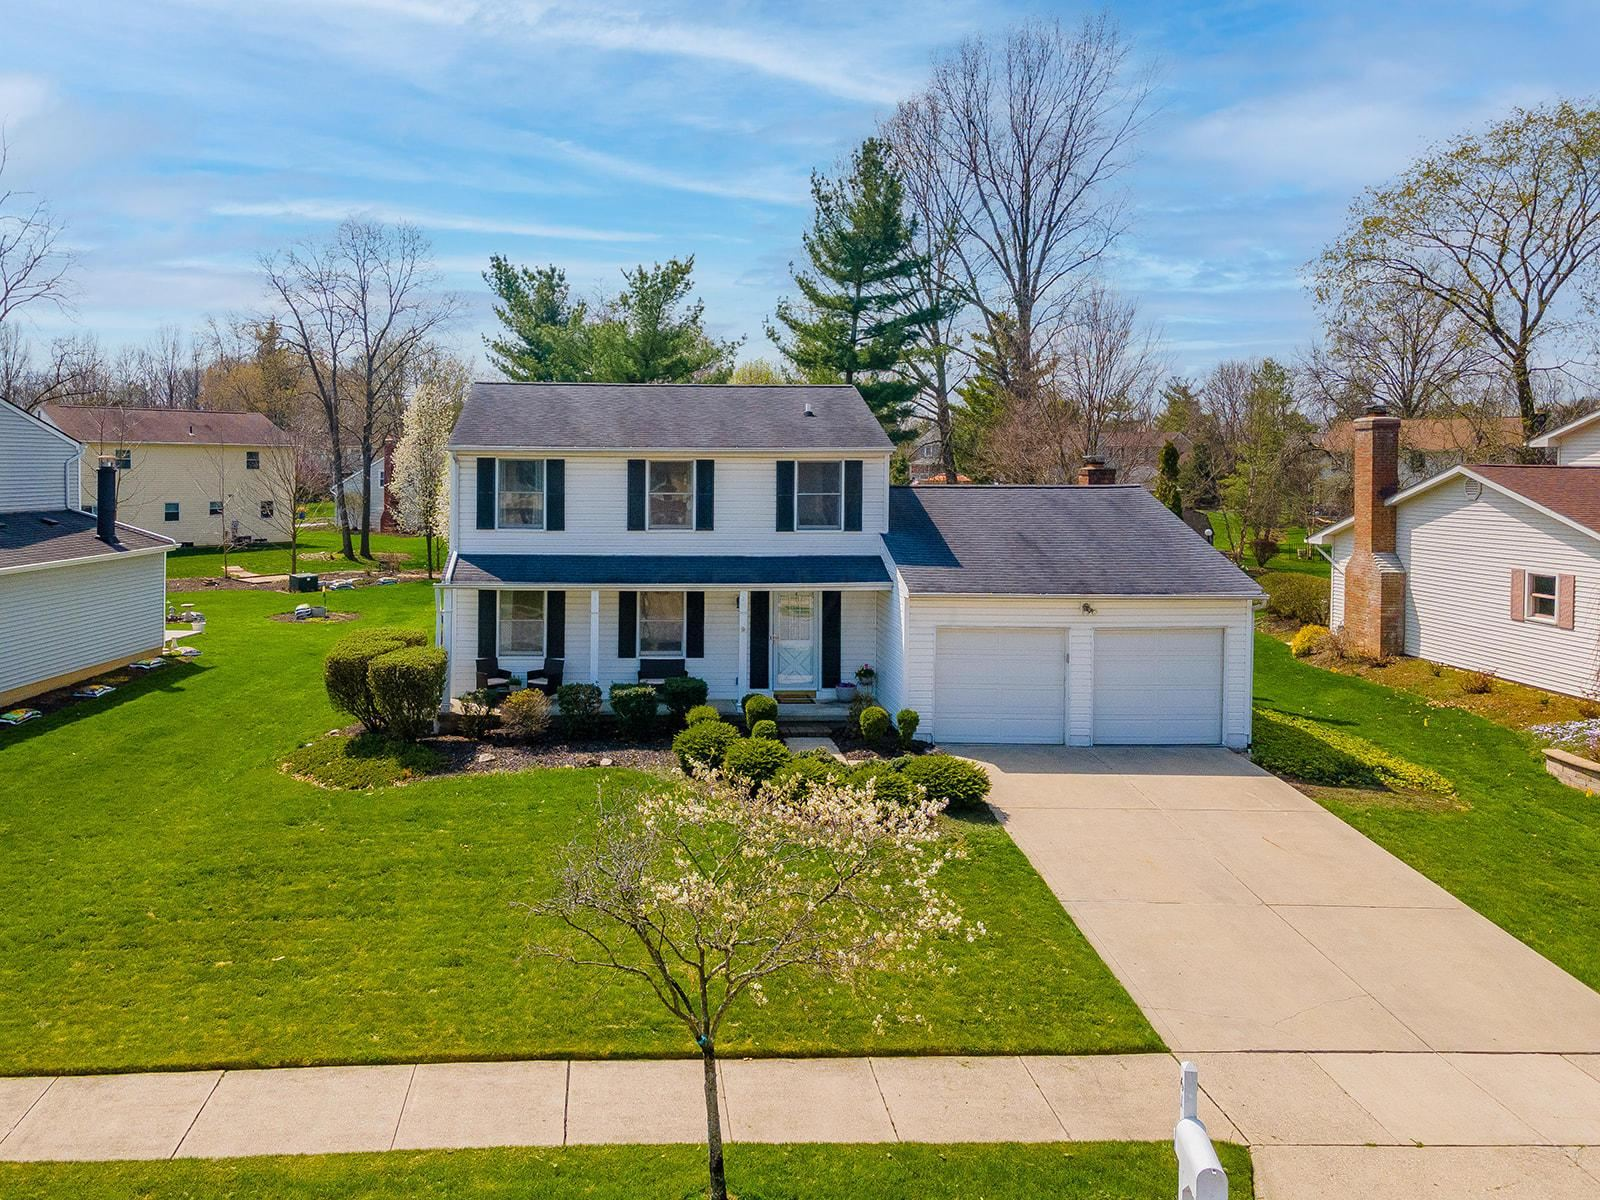 61 Whipple Place, Westerville, OH 43081 - MLS#: 221010212